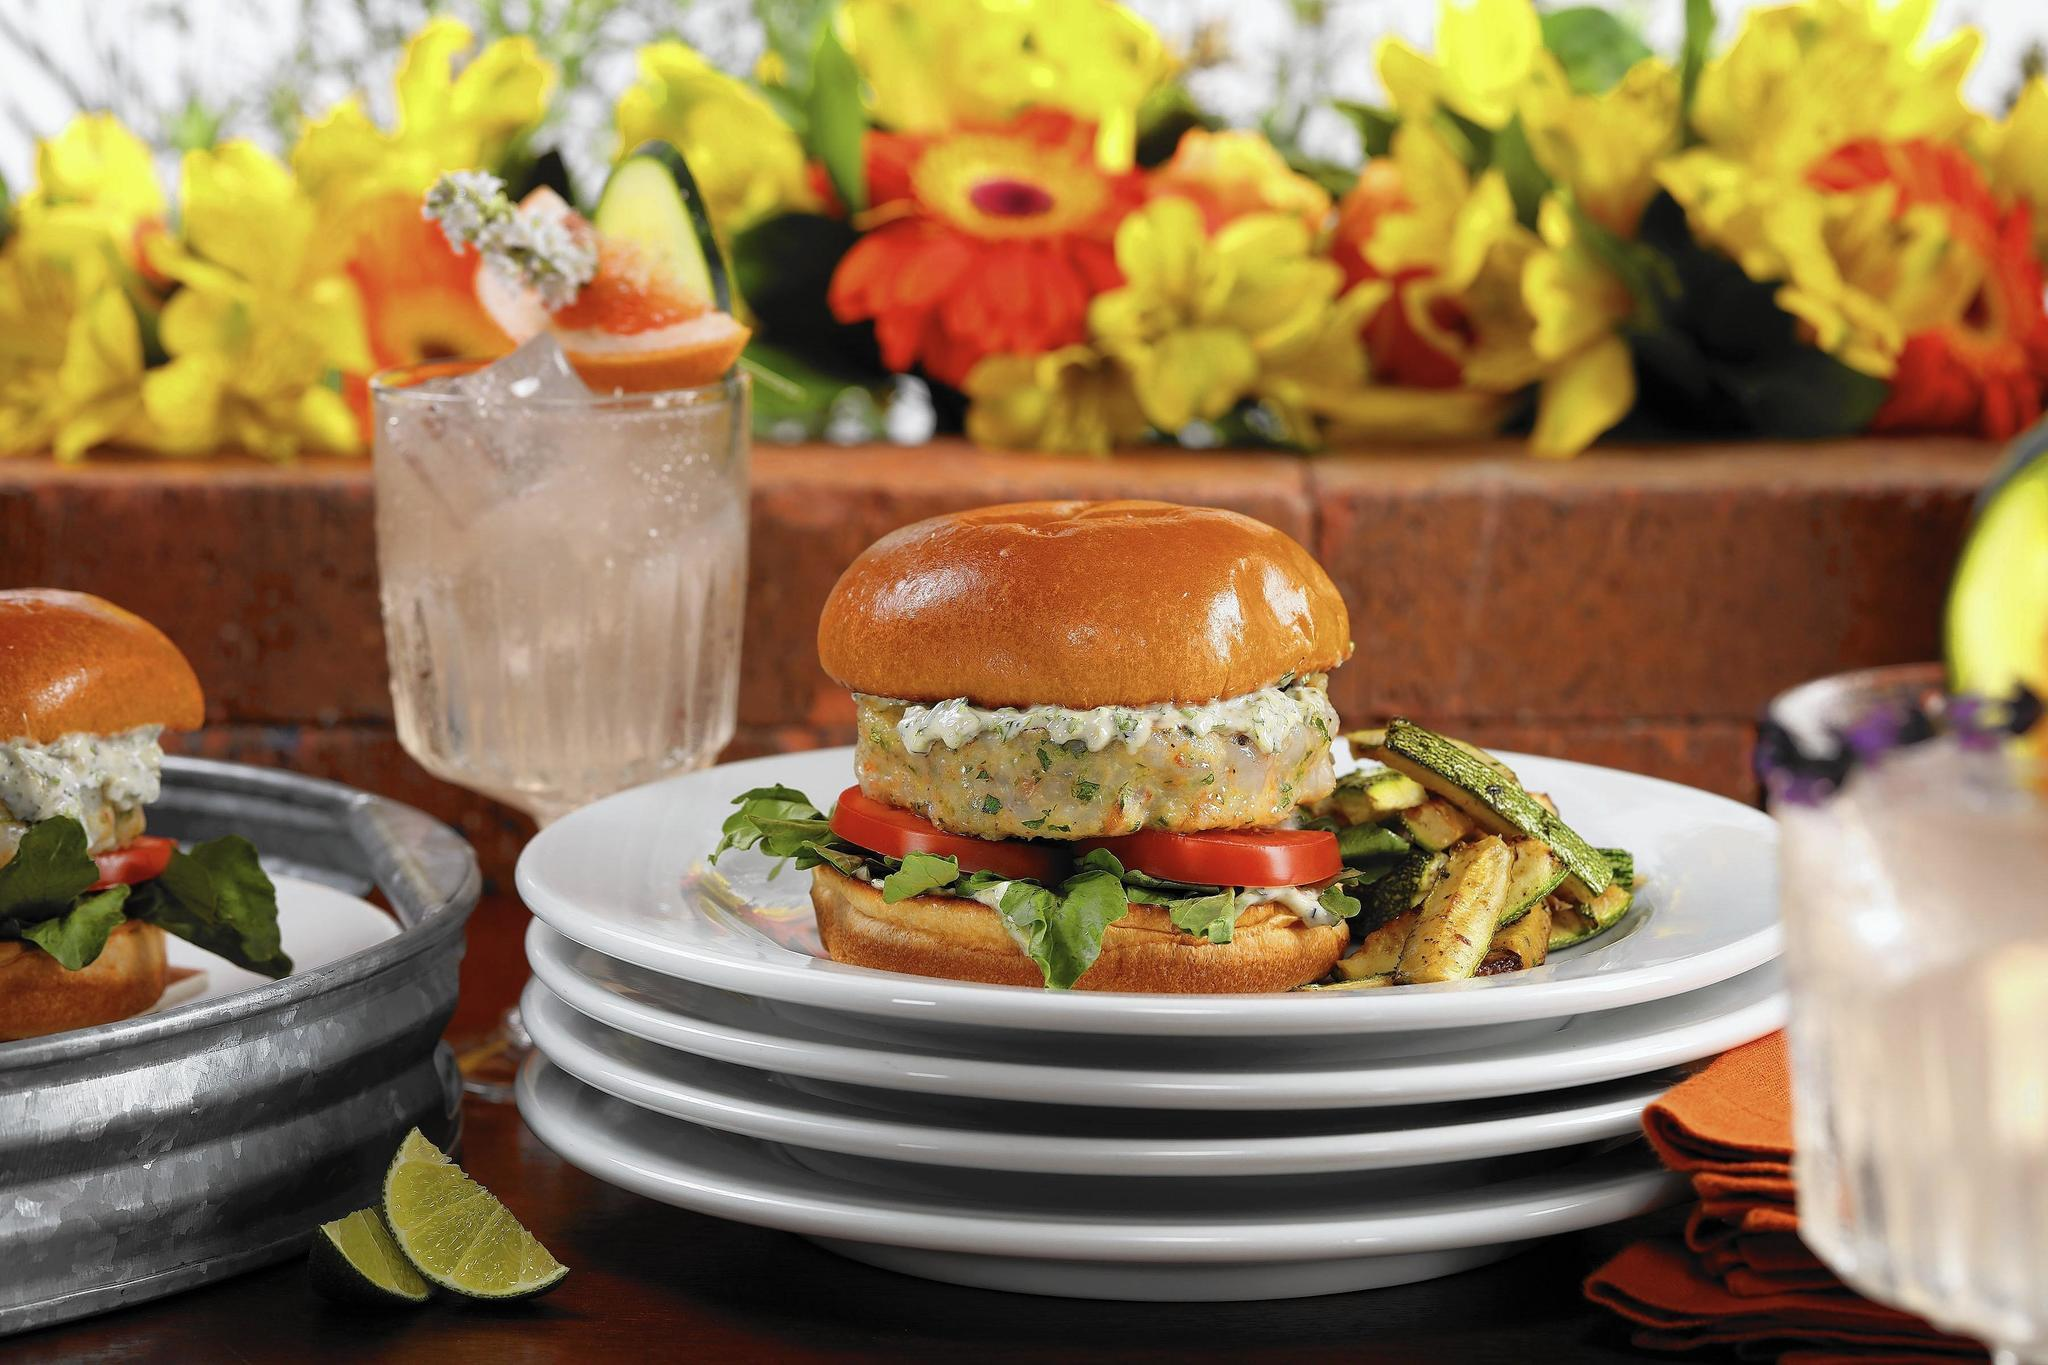 Shrimp burgers and herbed gin and tonics: A Labor Day to remember